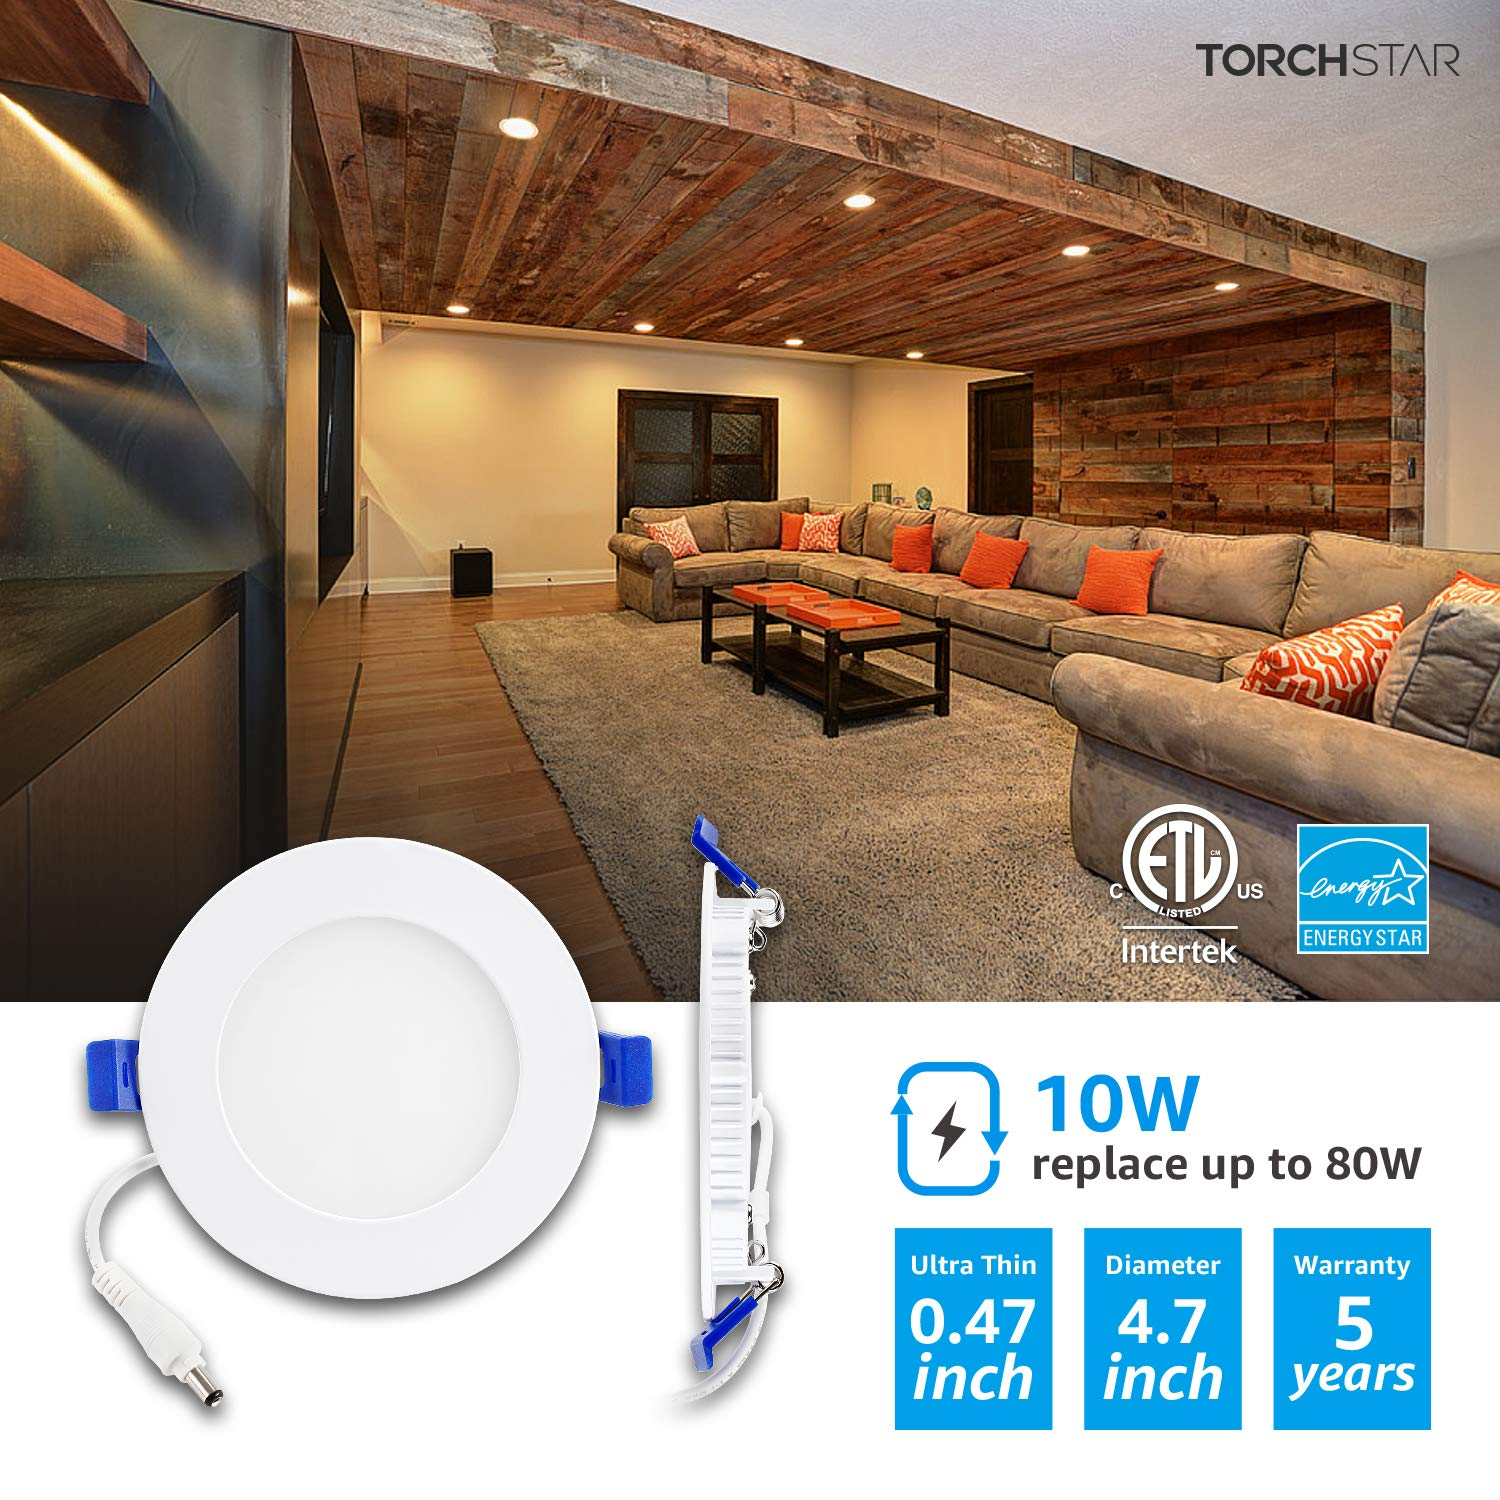 TORCHSTAR 12W 6'' Ultra-Thin Recessed Ceiling Light with Junction Box, 3000K Warm White, Dimmable Can-Killer Downlight, 850lm 100W Eqv. ETL and Energy Star Certified, Pack of 6 by TORCHSTAR (Image #4)